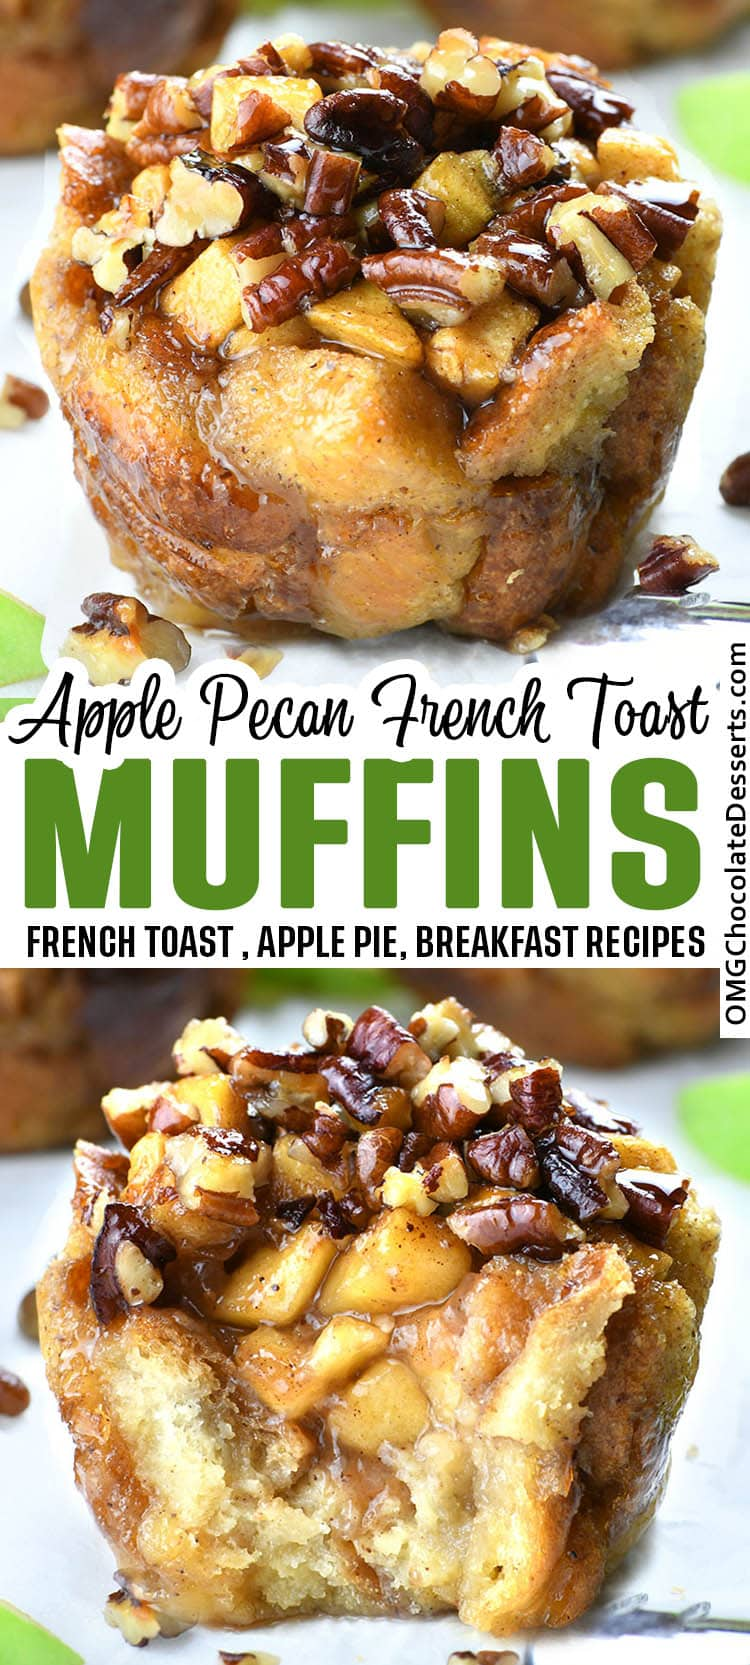 Apple Pecan French Toast Cups Omg Chocolate Desserts